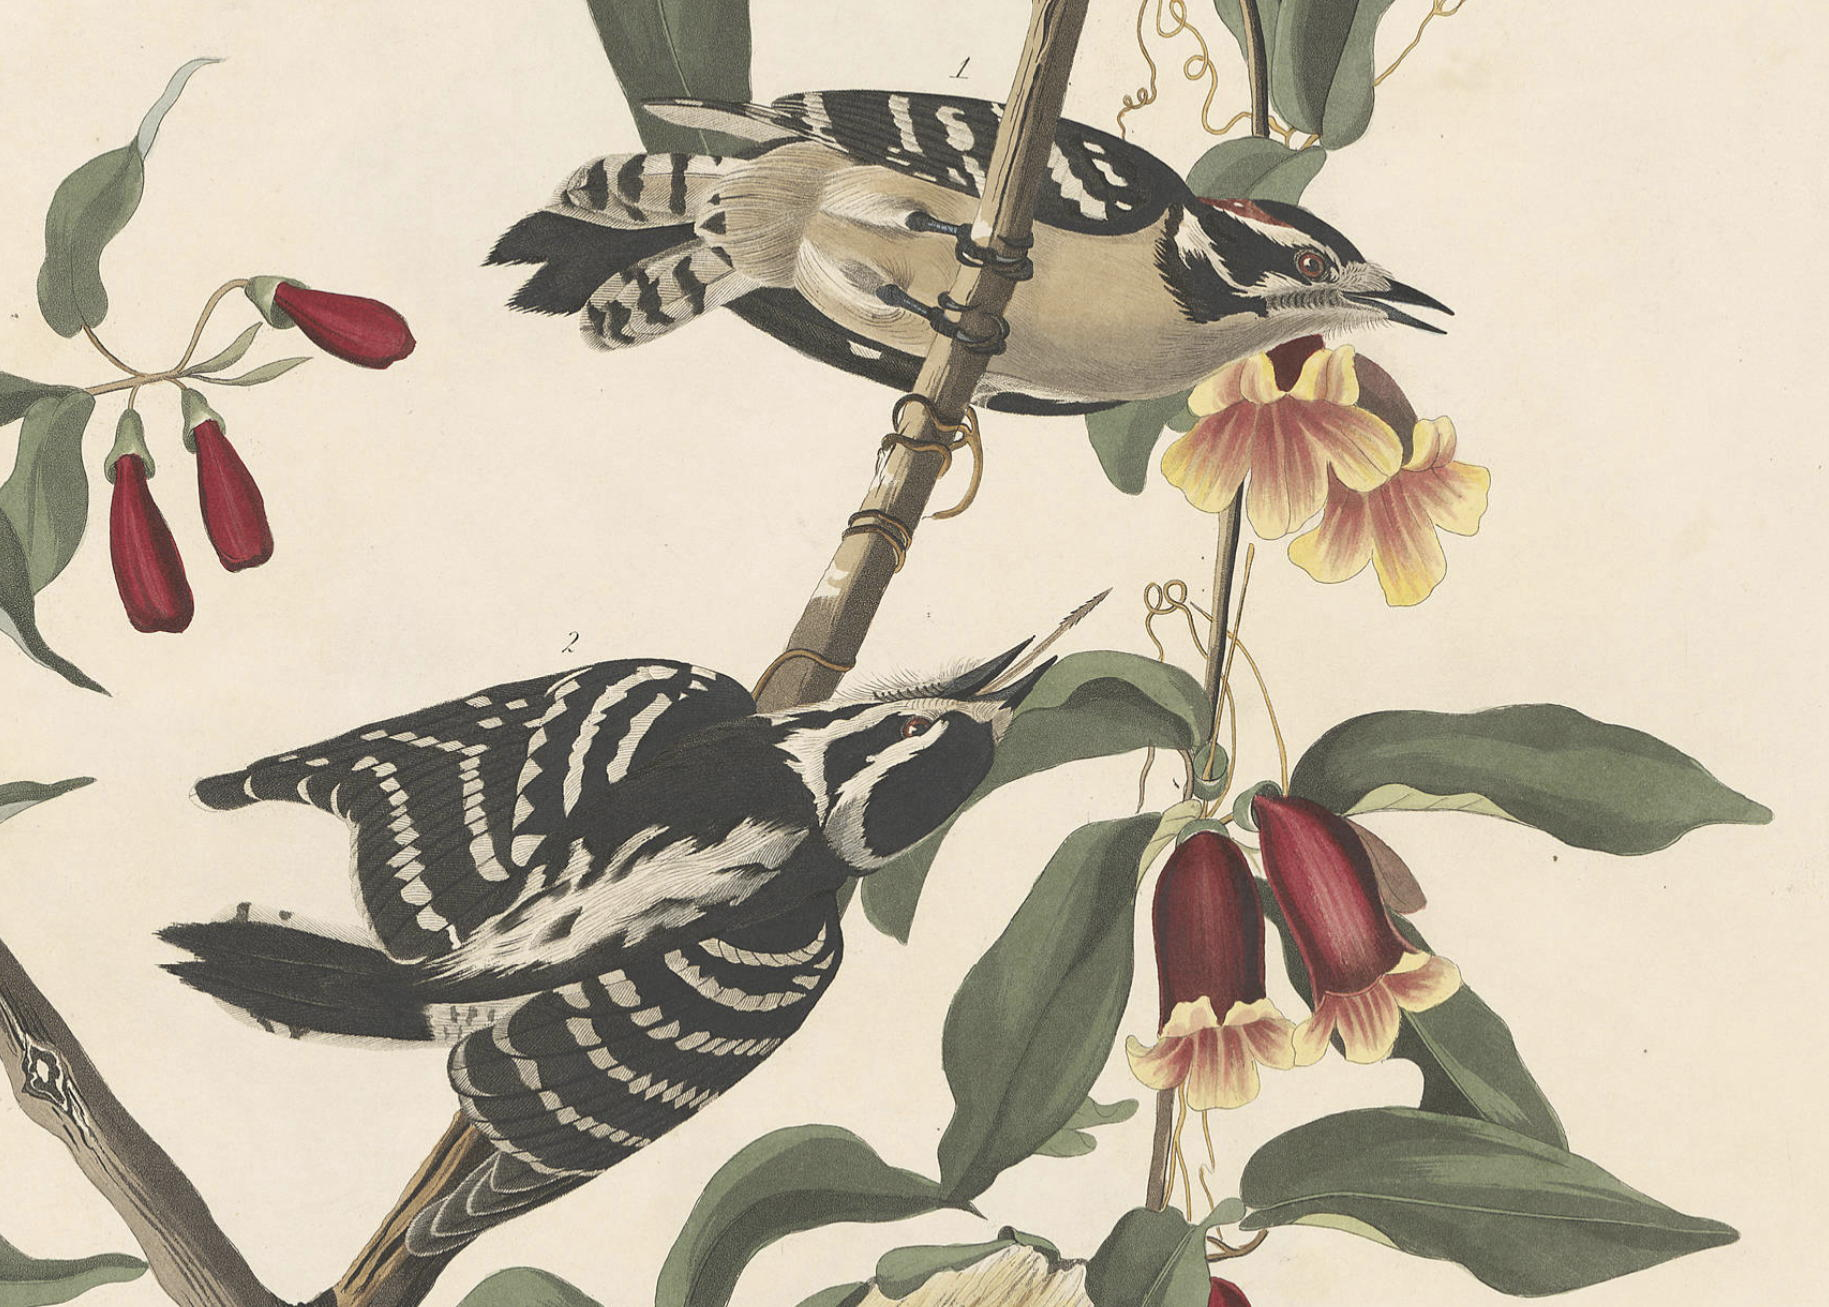 Detail from Downy Woodpecker by John James Audobon